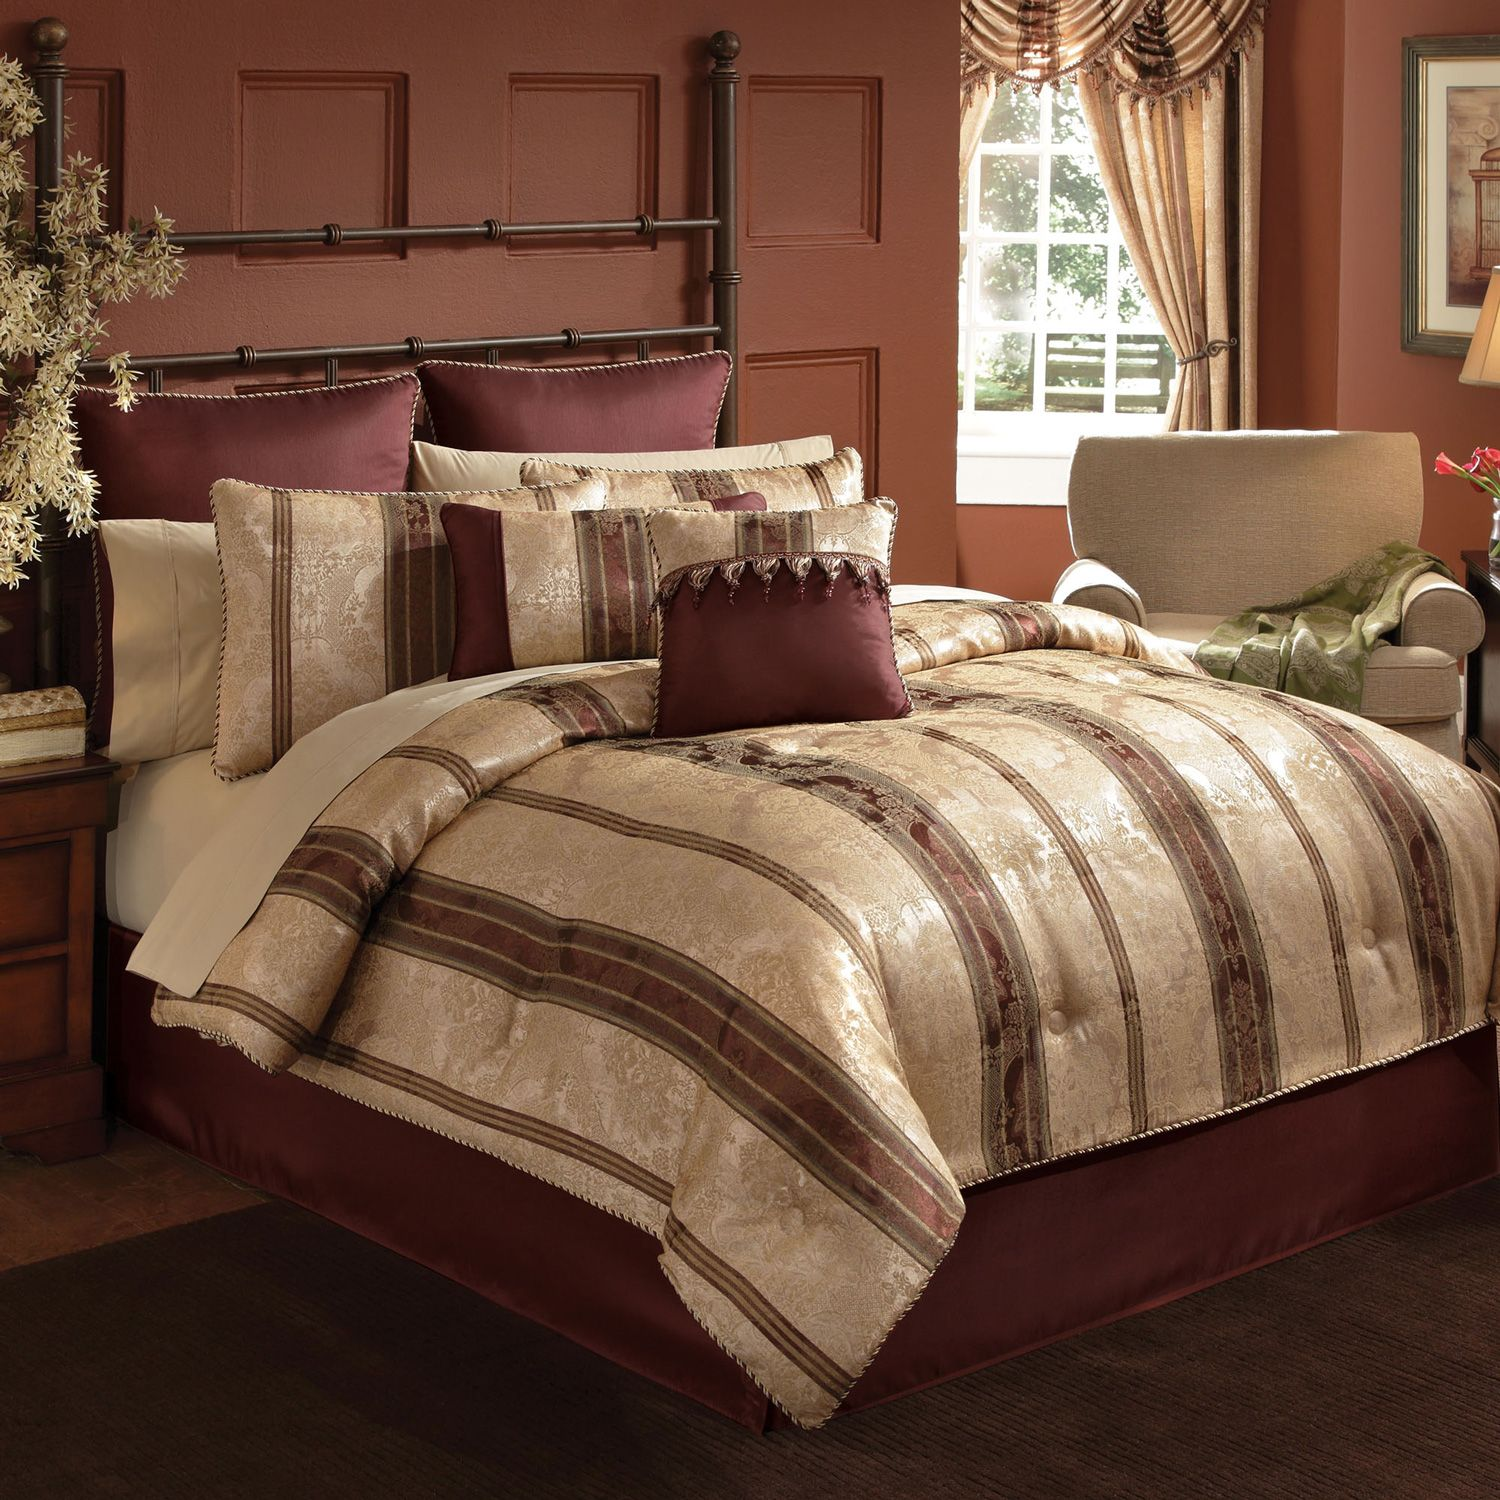 markis bedding sets king with pillows sets color